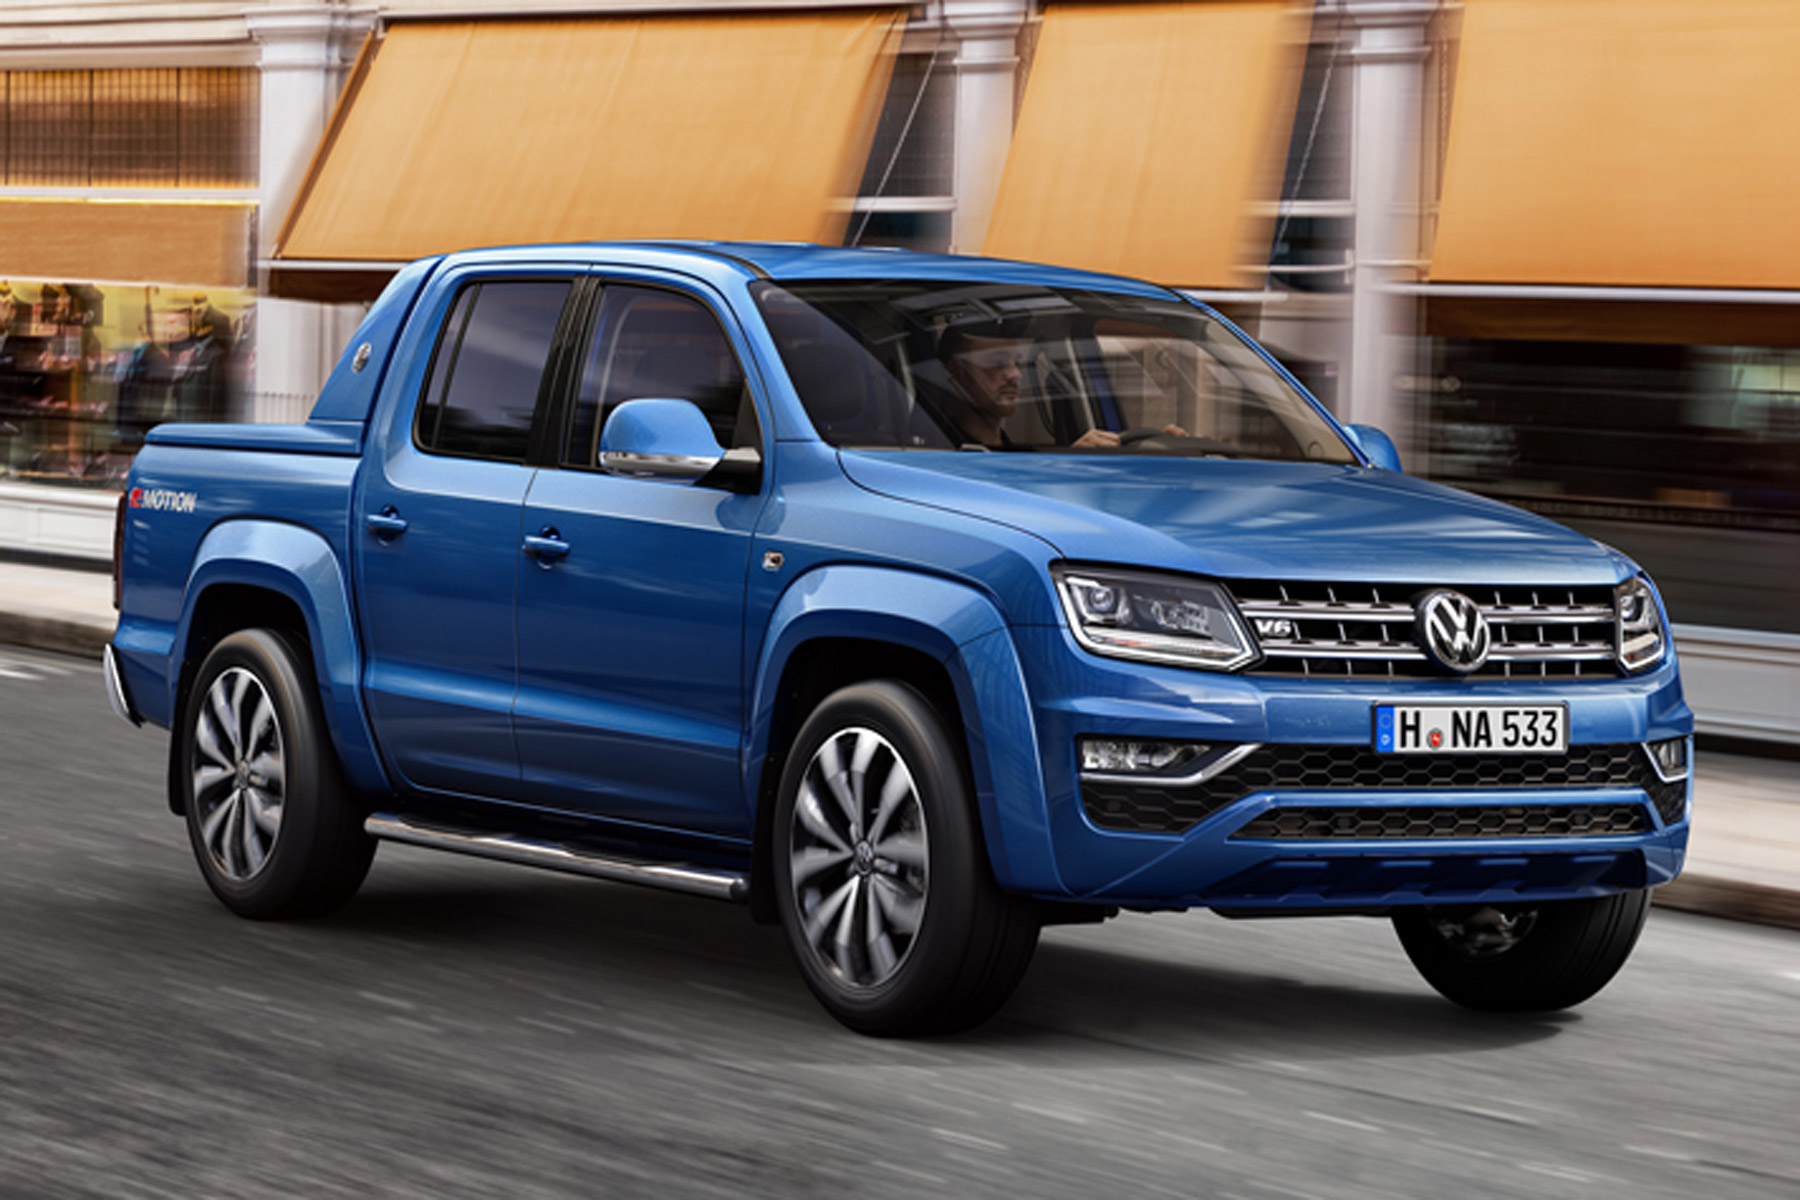 vw s new amarok pick up will hit 62mph in 7 9 seconds motoring research. Black Bedroom Furniture Sets. Home Design Ideas